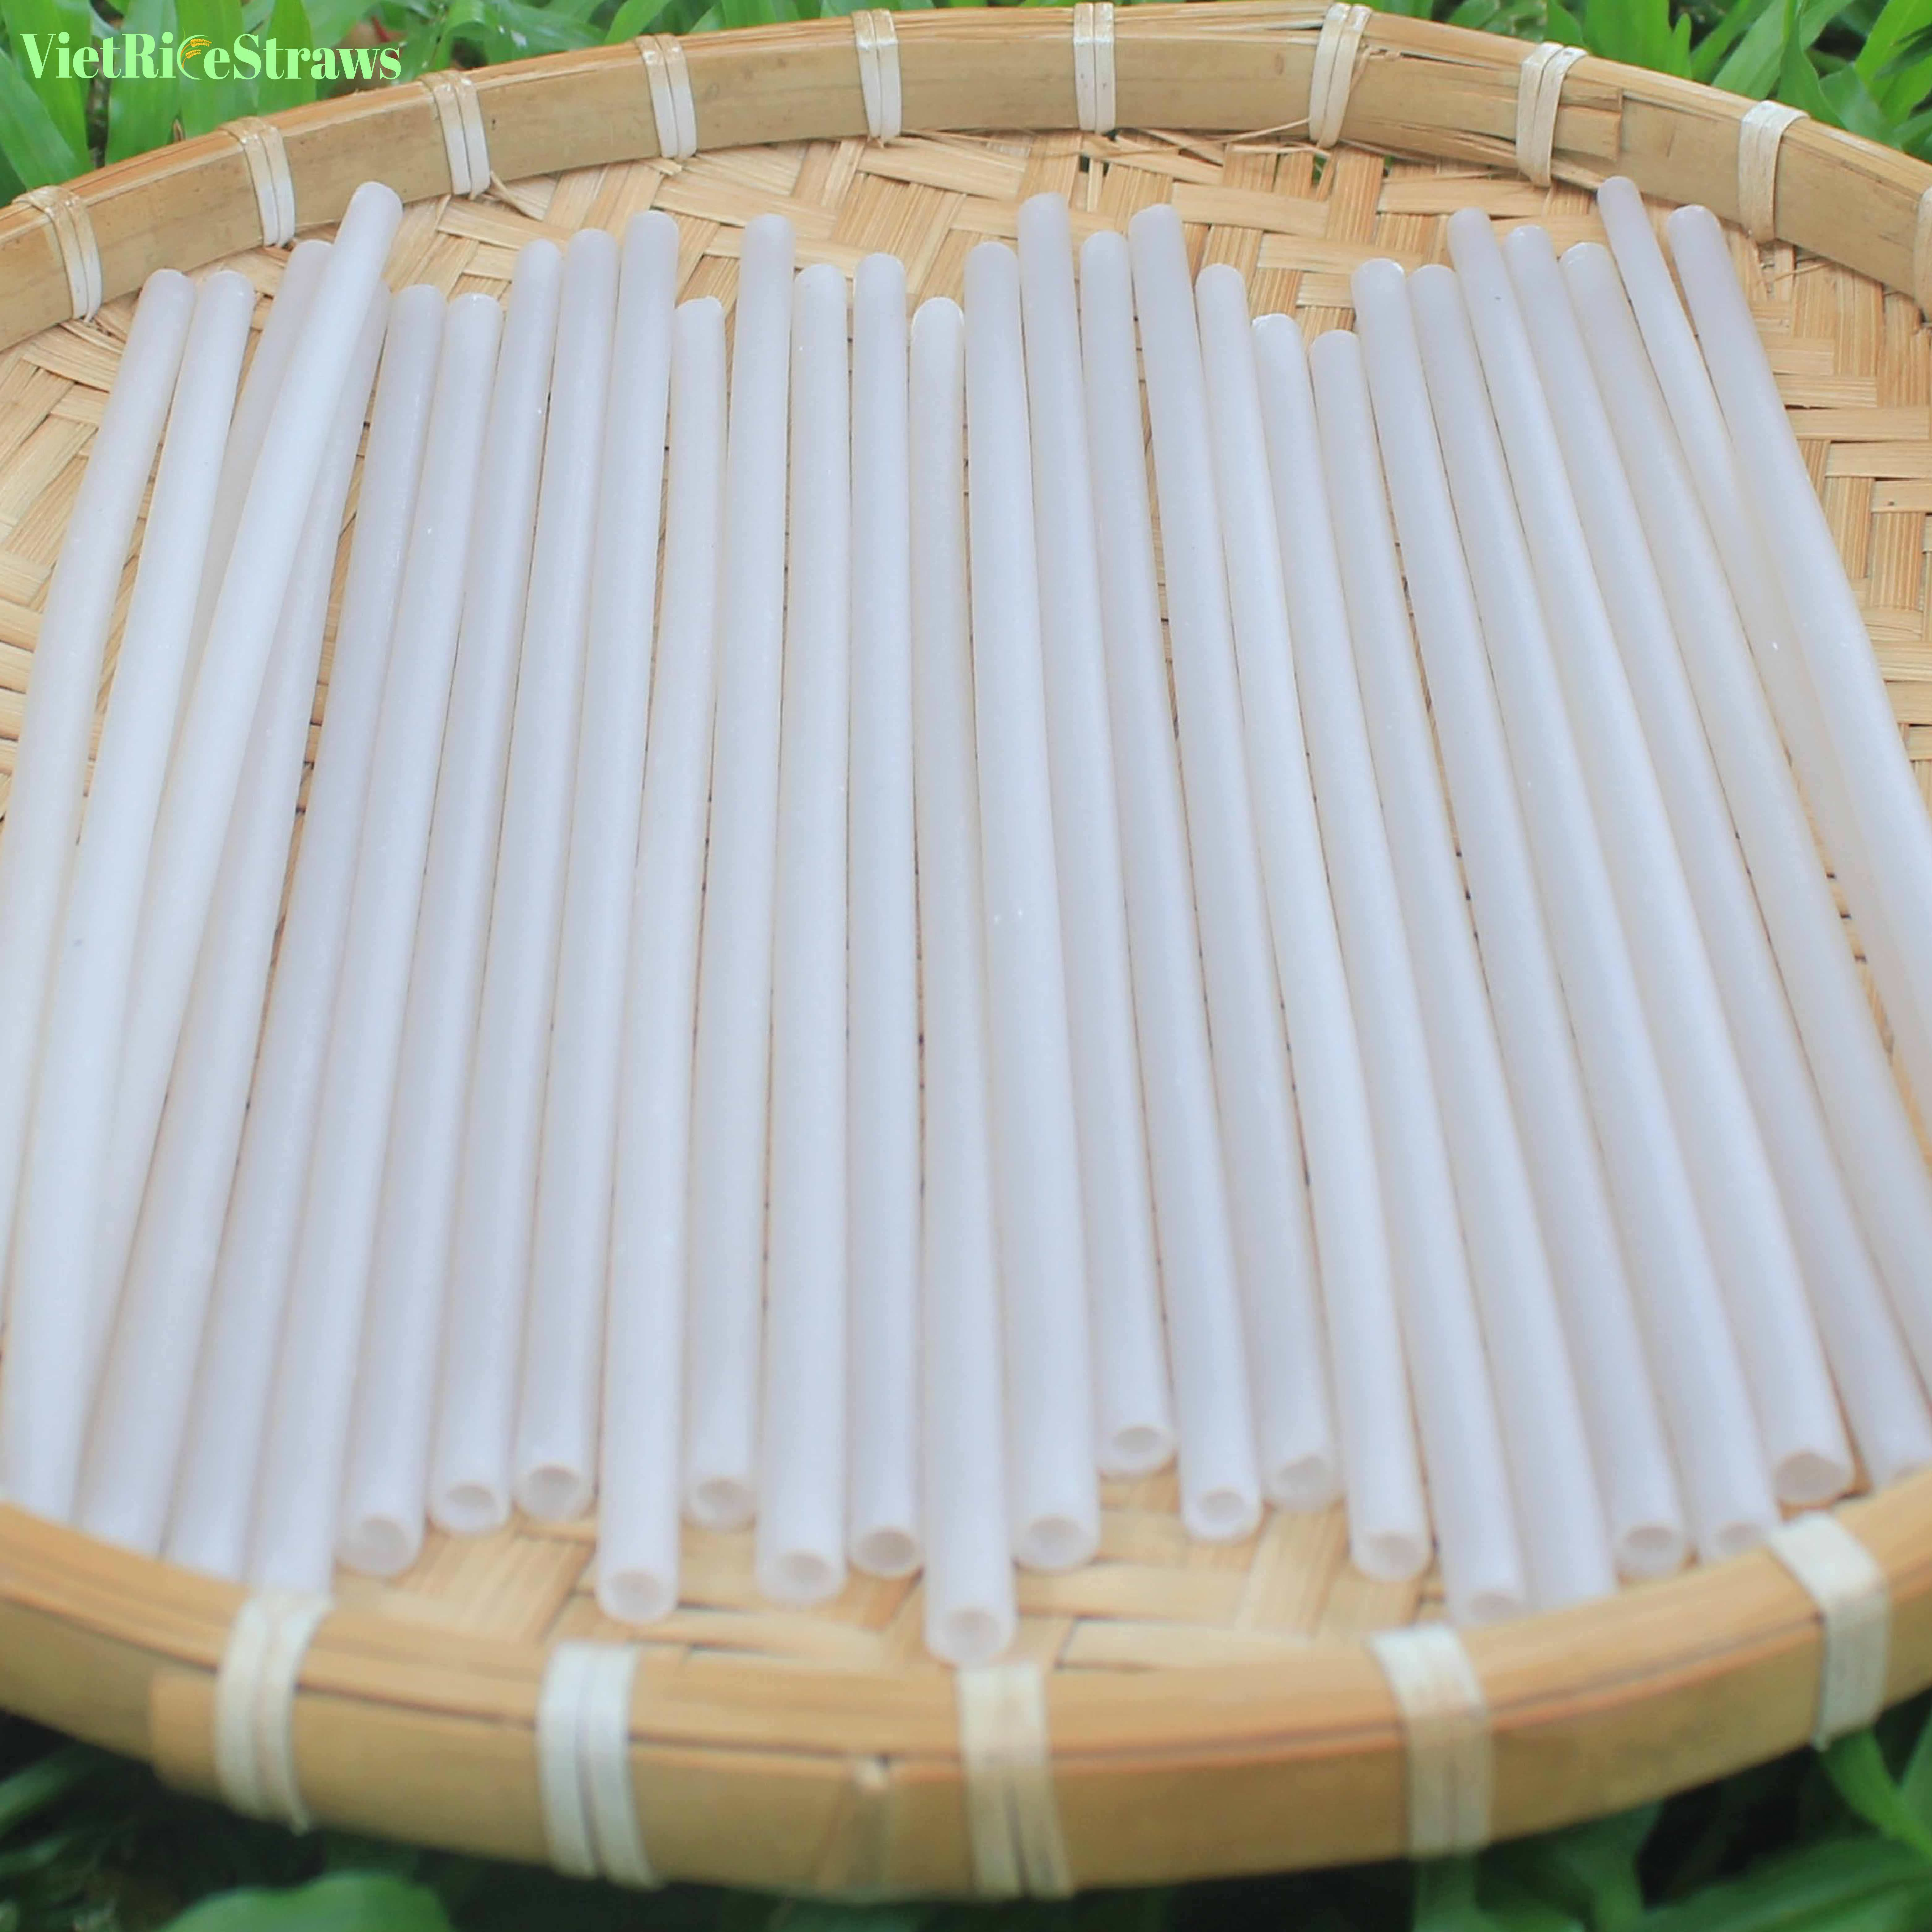 Supplying rice drinking straw with hight quality / Eco - Friendly and Safe Edible rice straw / New design natural rice straws